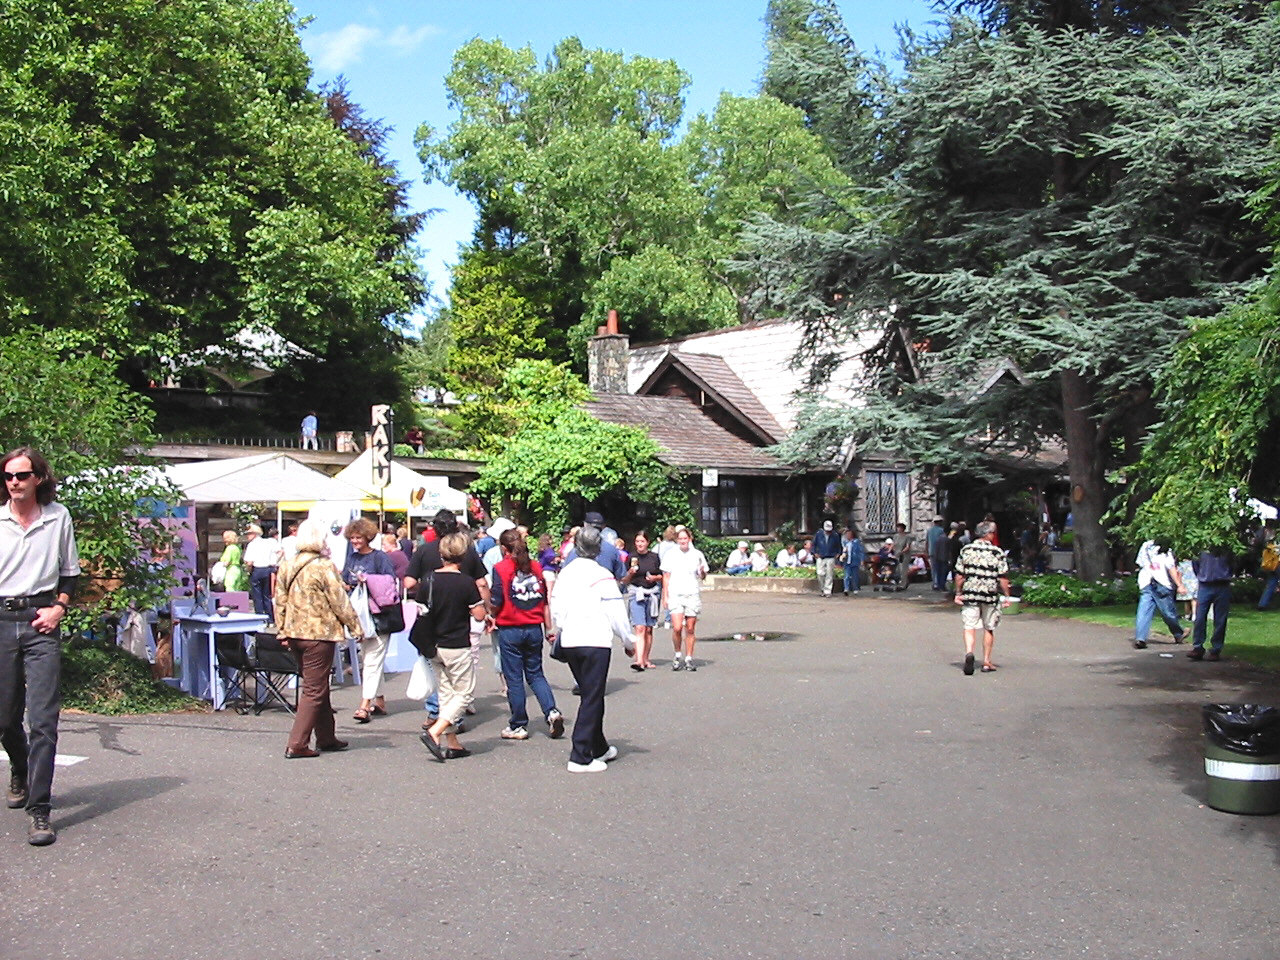 art and craft exhibits at Filberg Festival